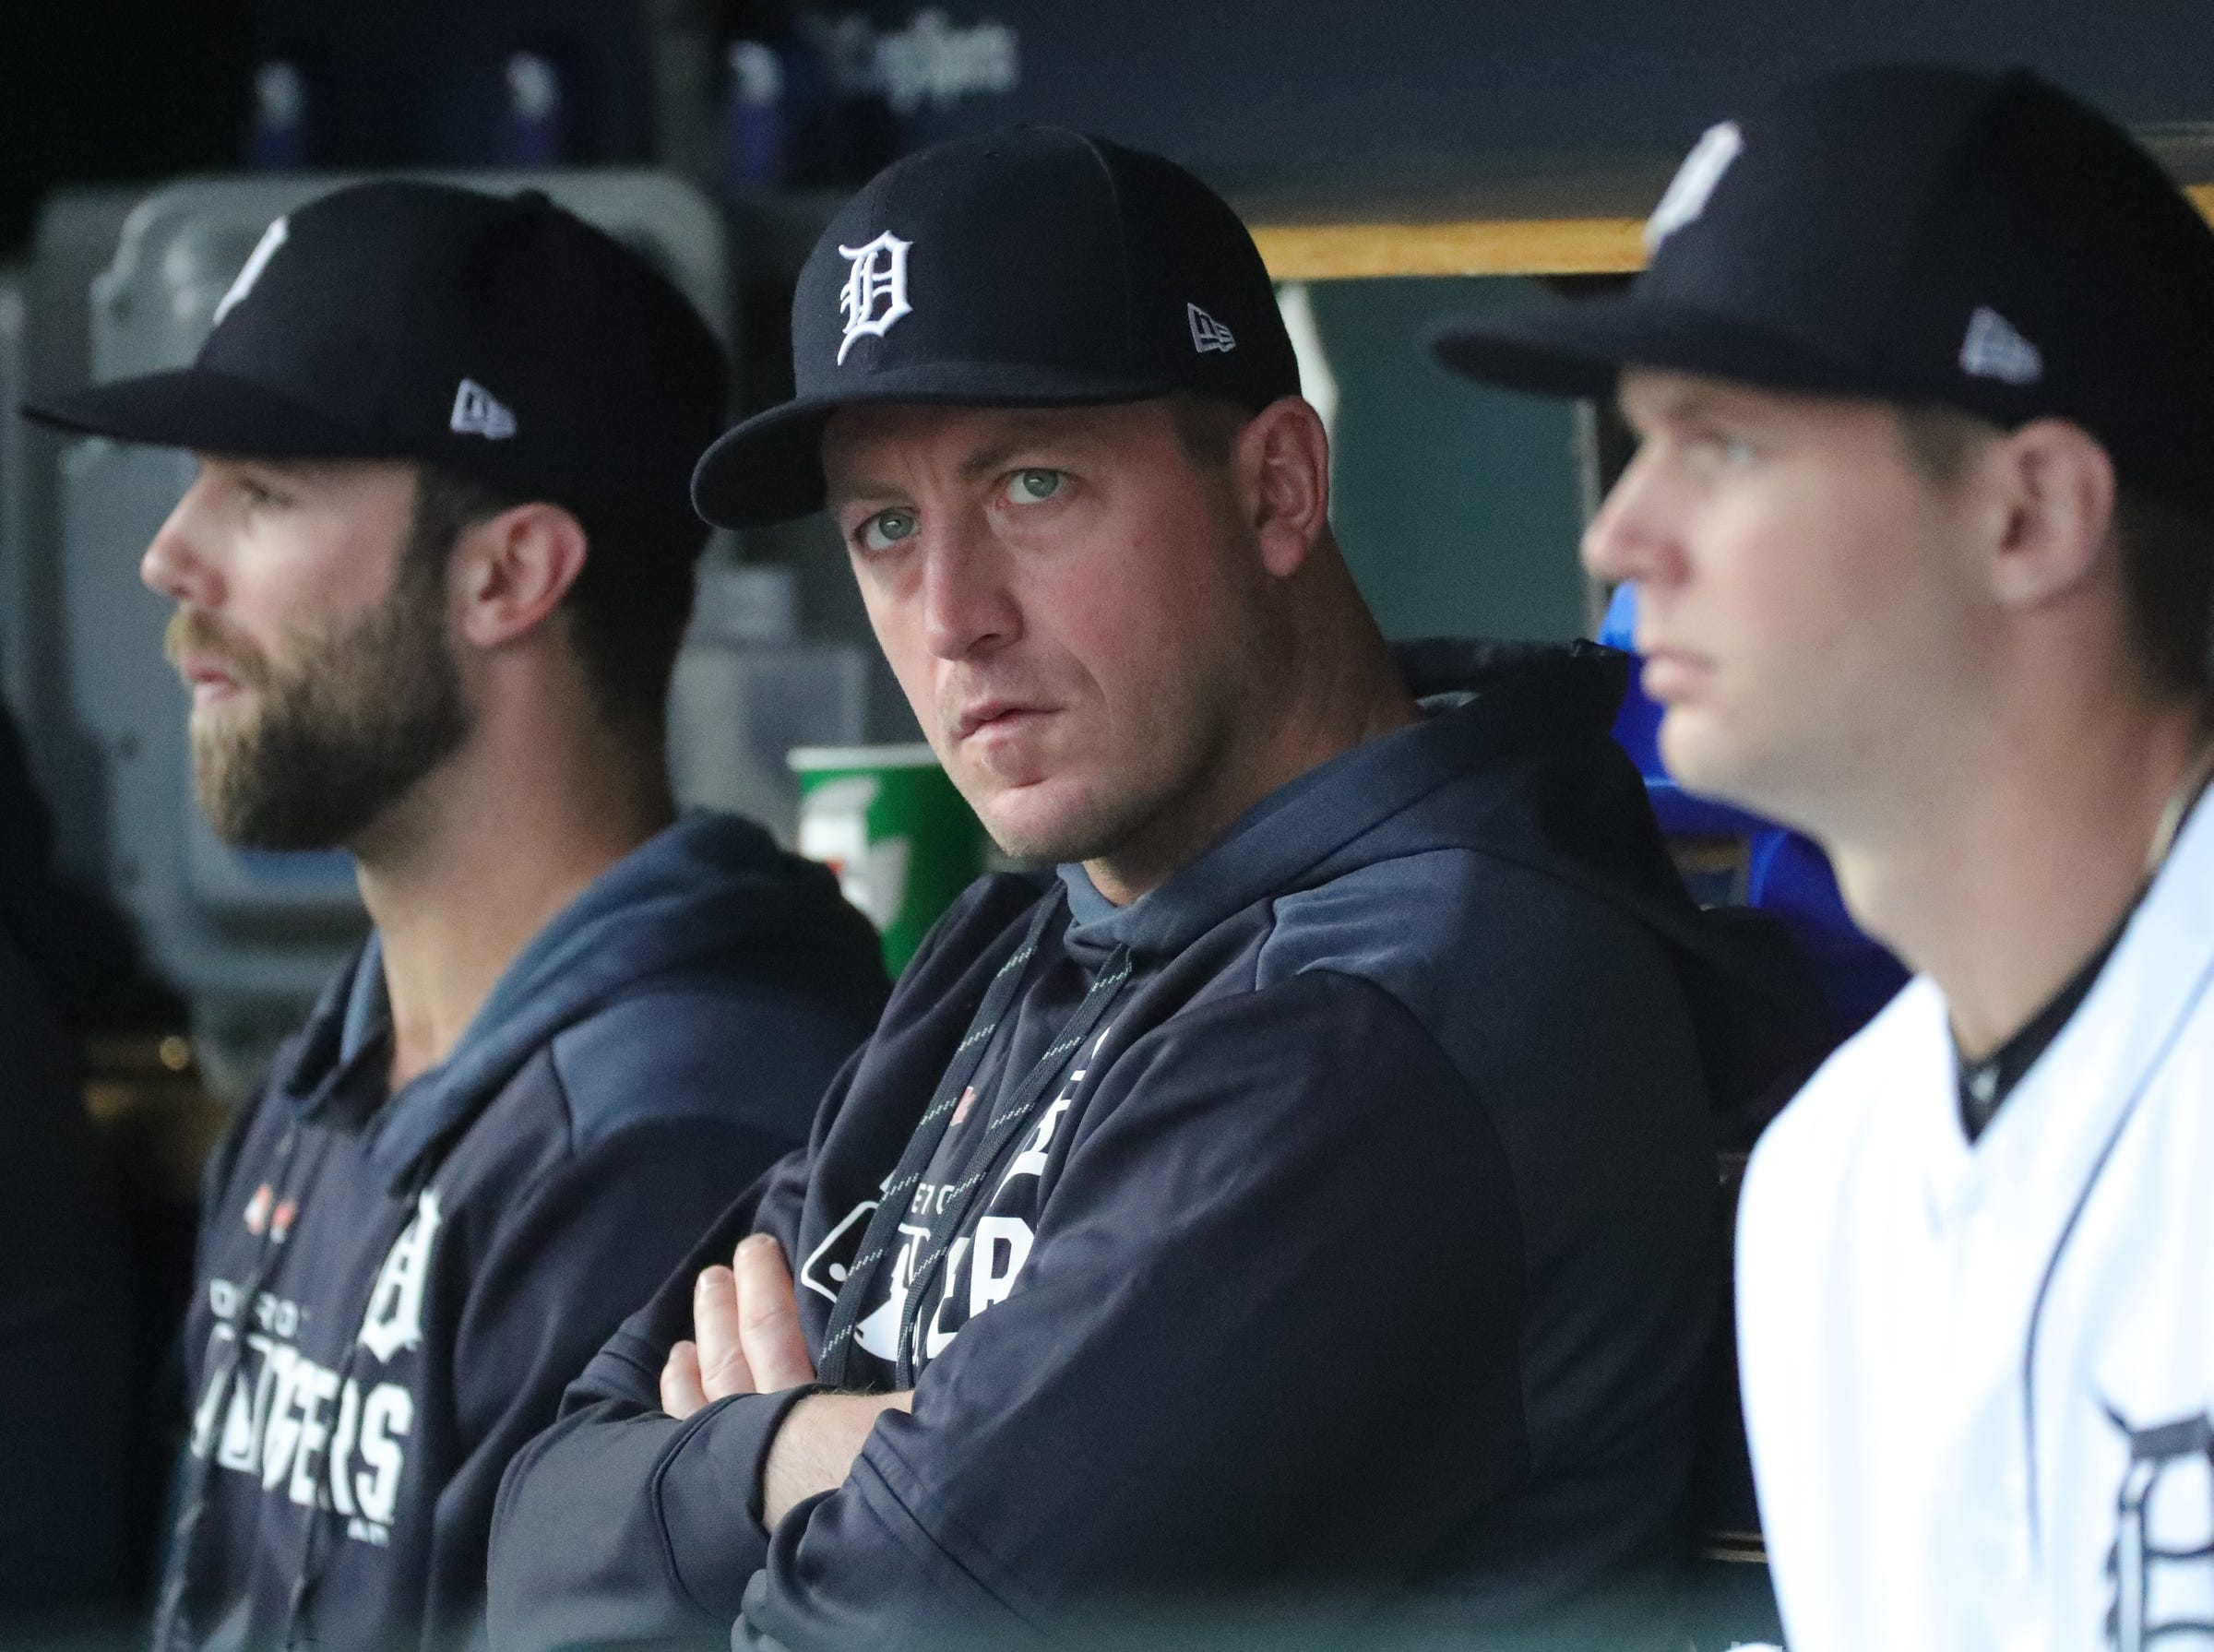 Detroit Tigers pitcher Jordan Zimmermann in the dugout during action against the Houston Astros, Wednesday, May 15, 2019 at Comerica Park.